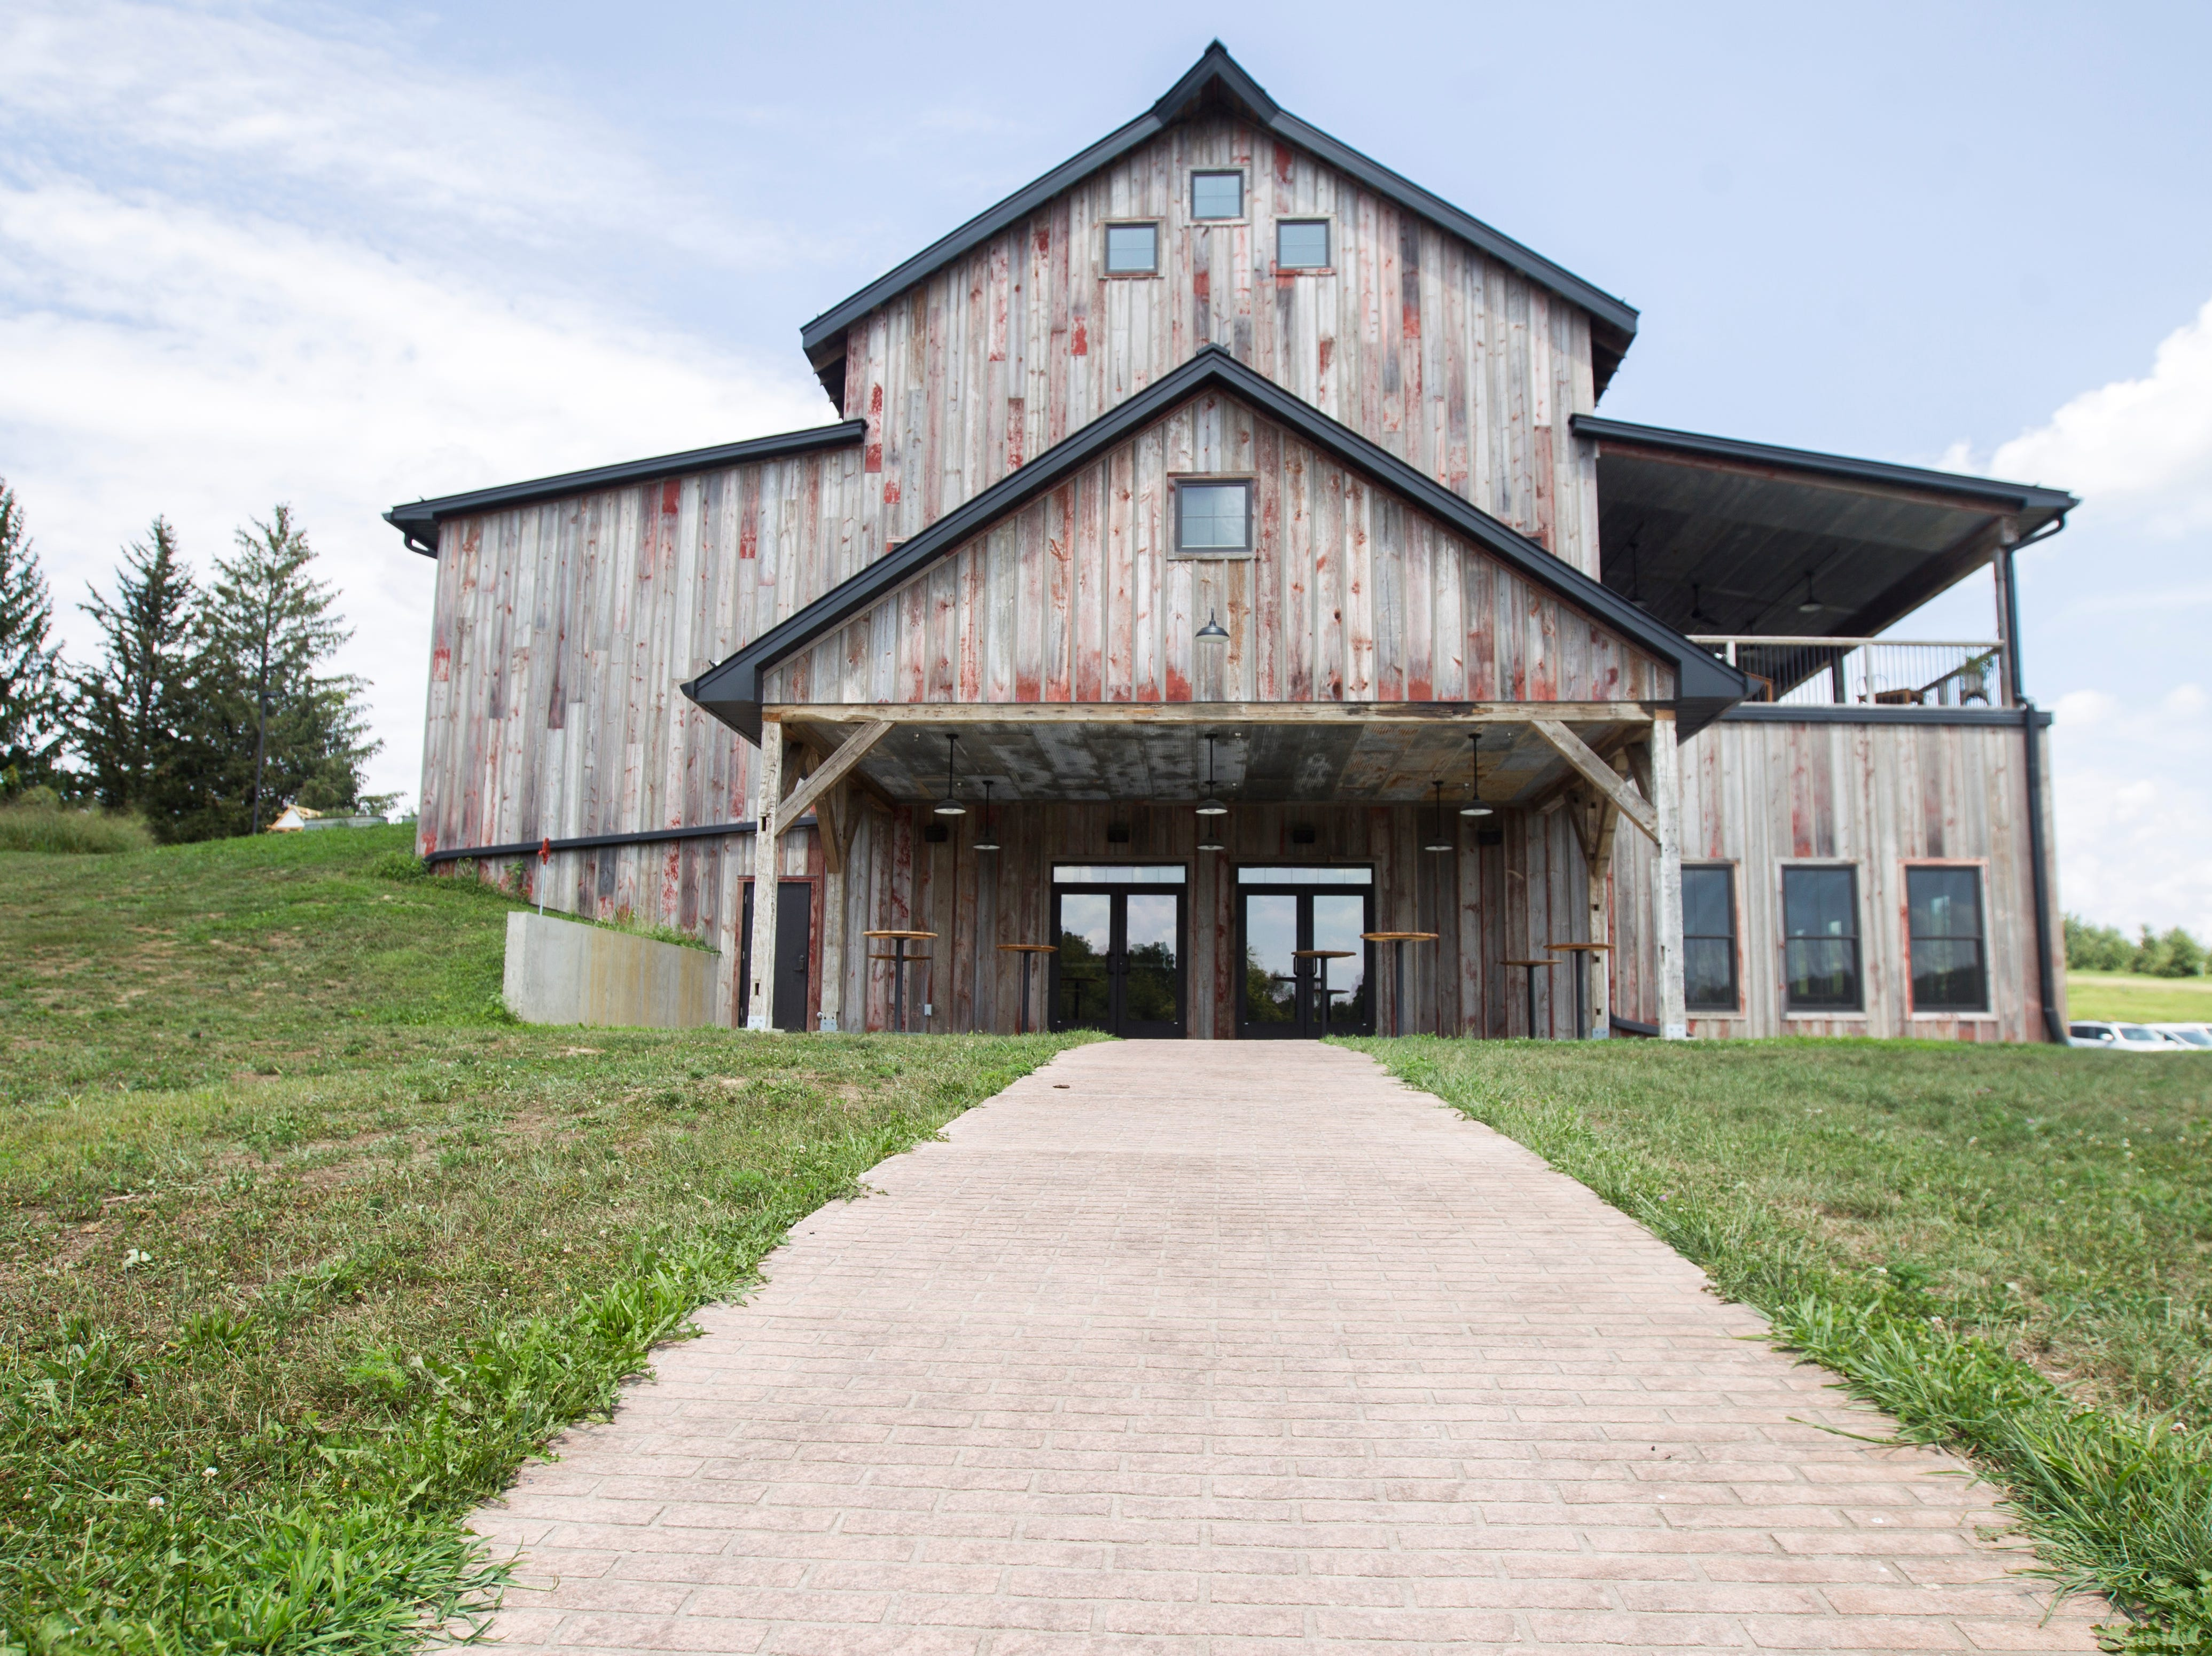 Rapid Creek Cidery is seen on Wednesday, Aug. 1, 2018, in Iowa City, Iowa. The lower floor of the building is designed for events and has a chapel area for weddings down a brick walkway.